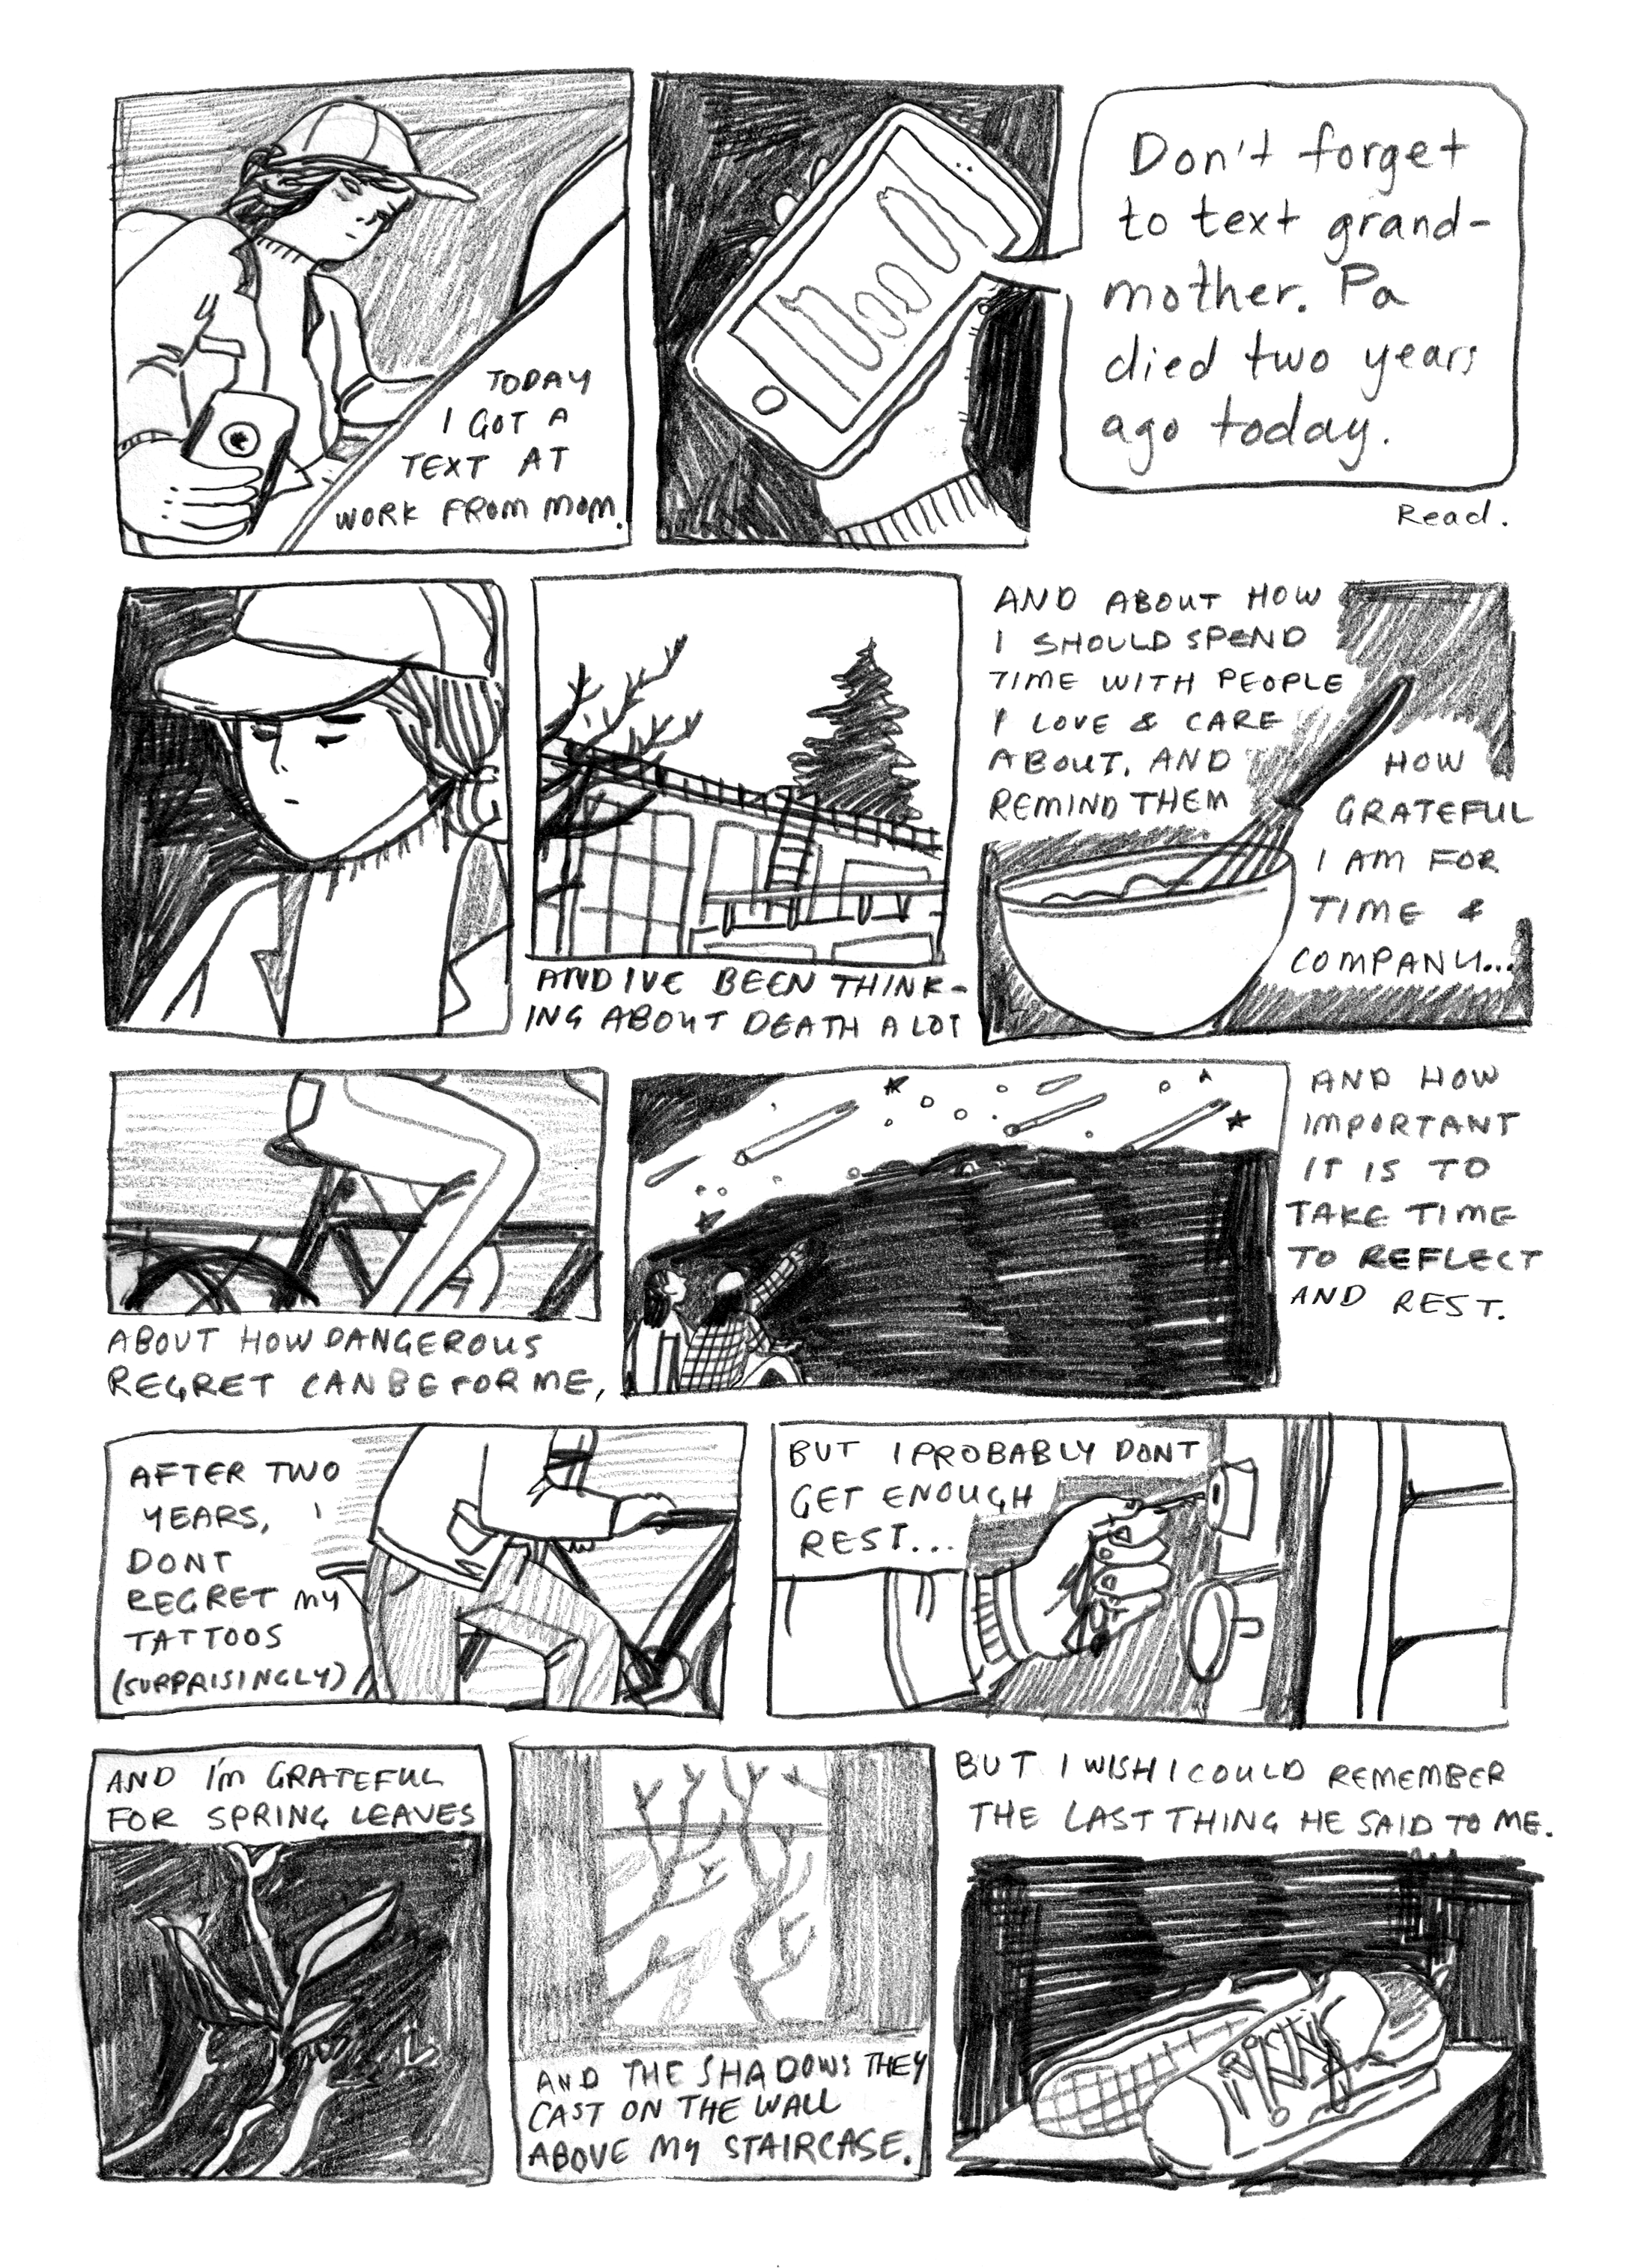 A comic I wrote today about my grandfather, who died two years ago today. His life and death and memory remind me to relax and be grateful and to treat people with kindness and to reflect.